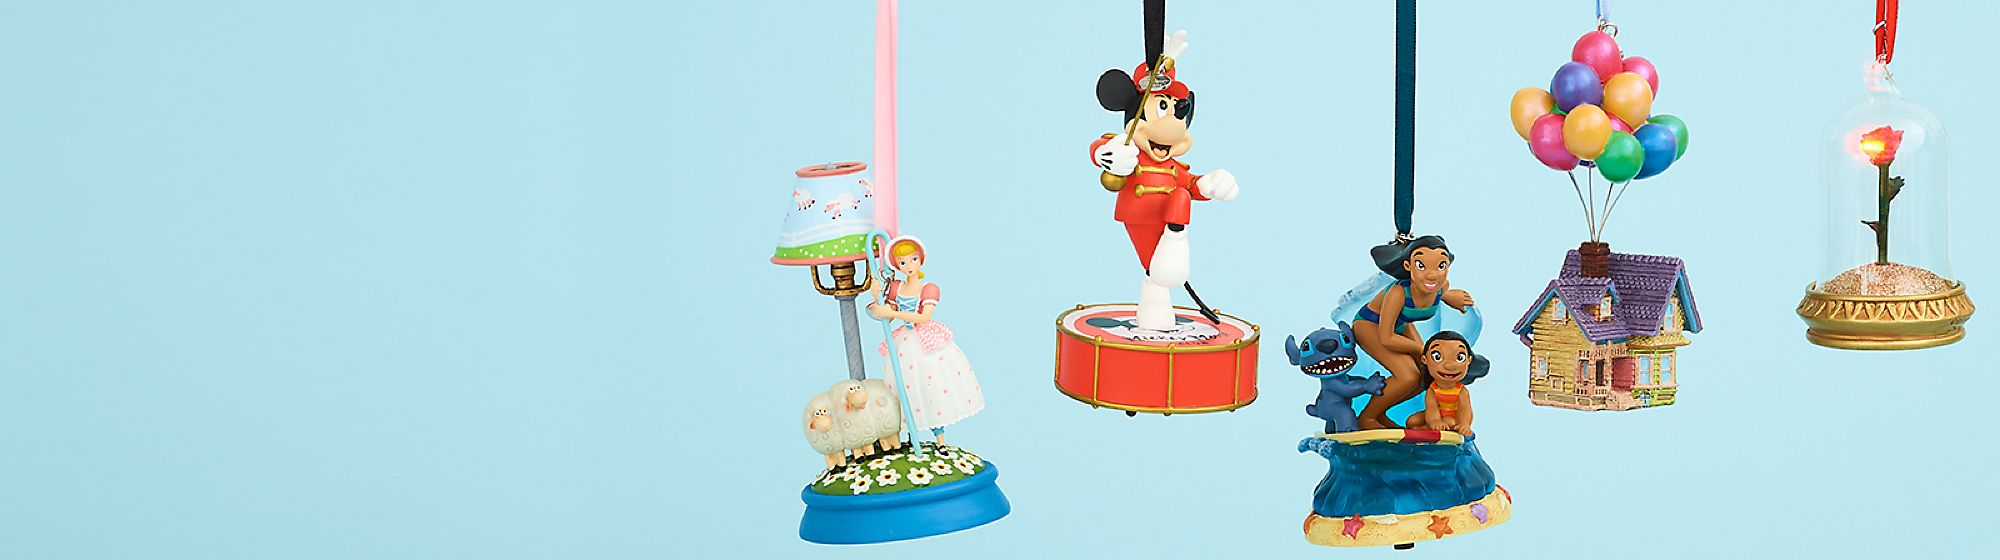 Ornements Pour une décoration magique, découvrez notre collection d'ornements Disney à l'effigie de Mickey, Star Wars ou encore Cendrillon !